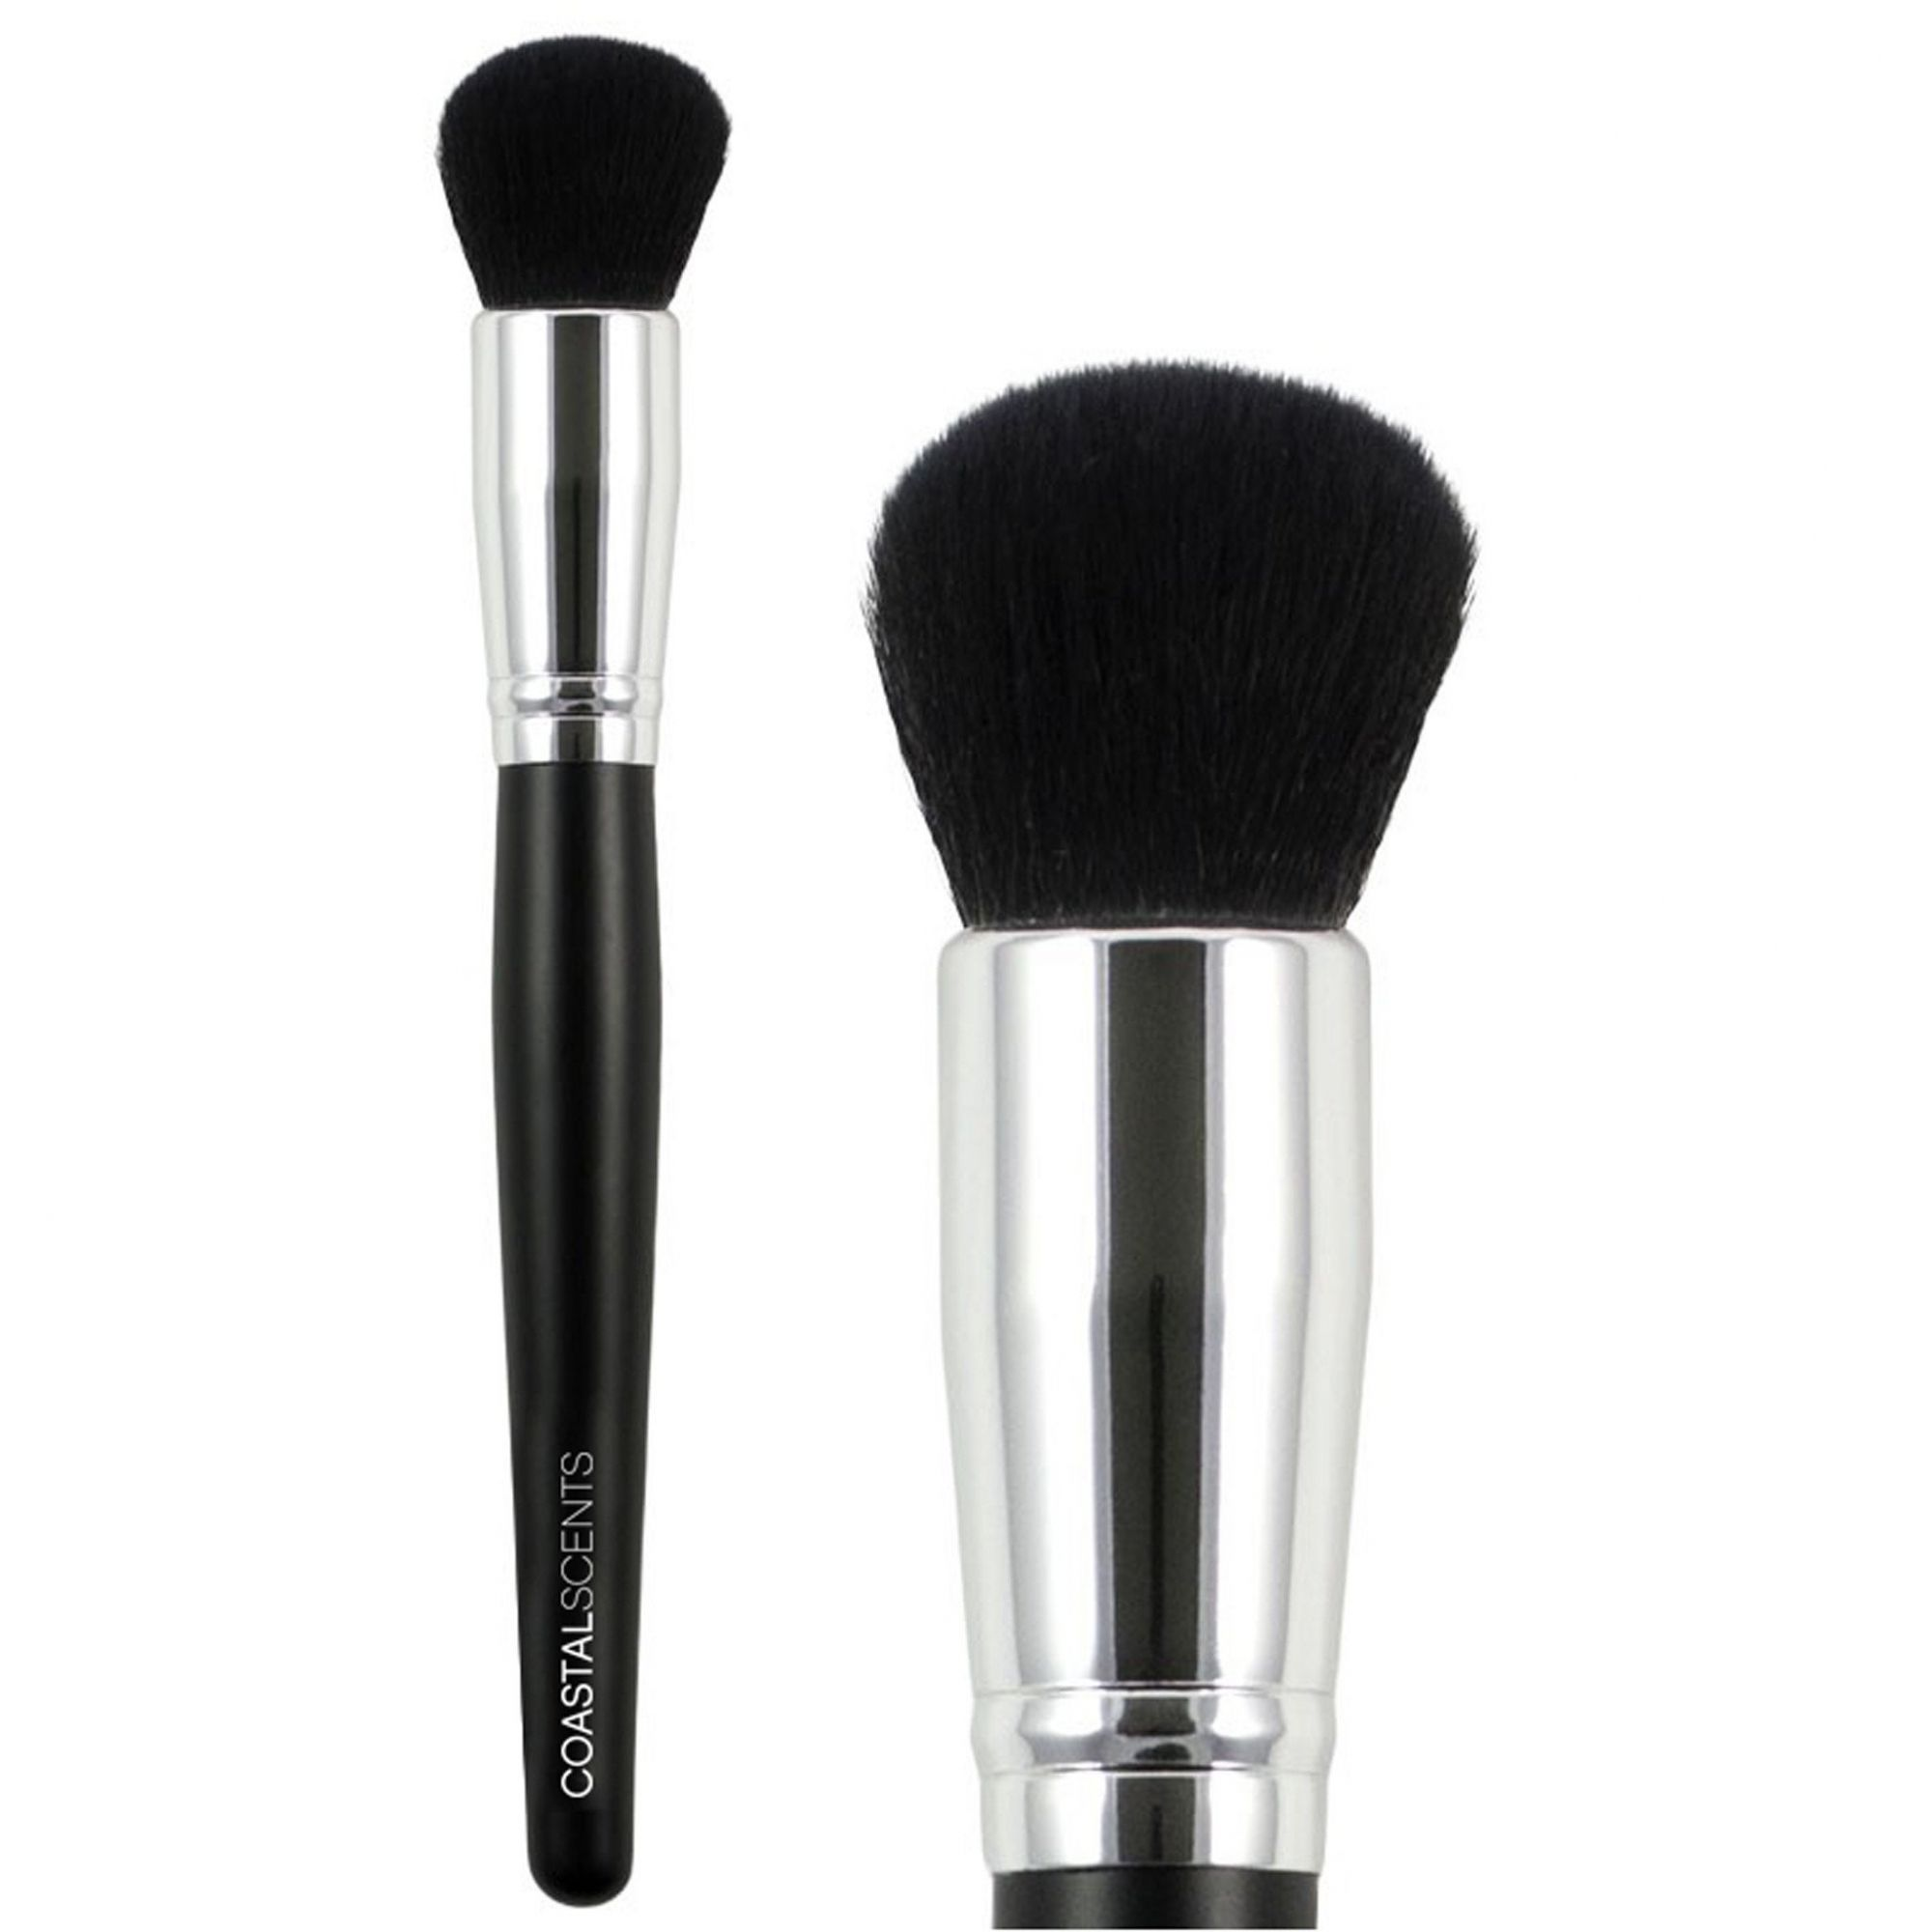 S28 - Classic Buffer Brush Small Synthetic | Coastal Scents